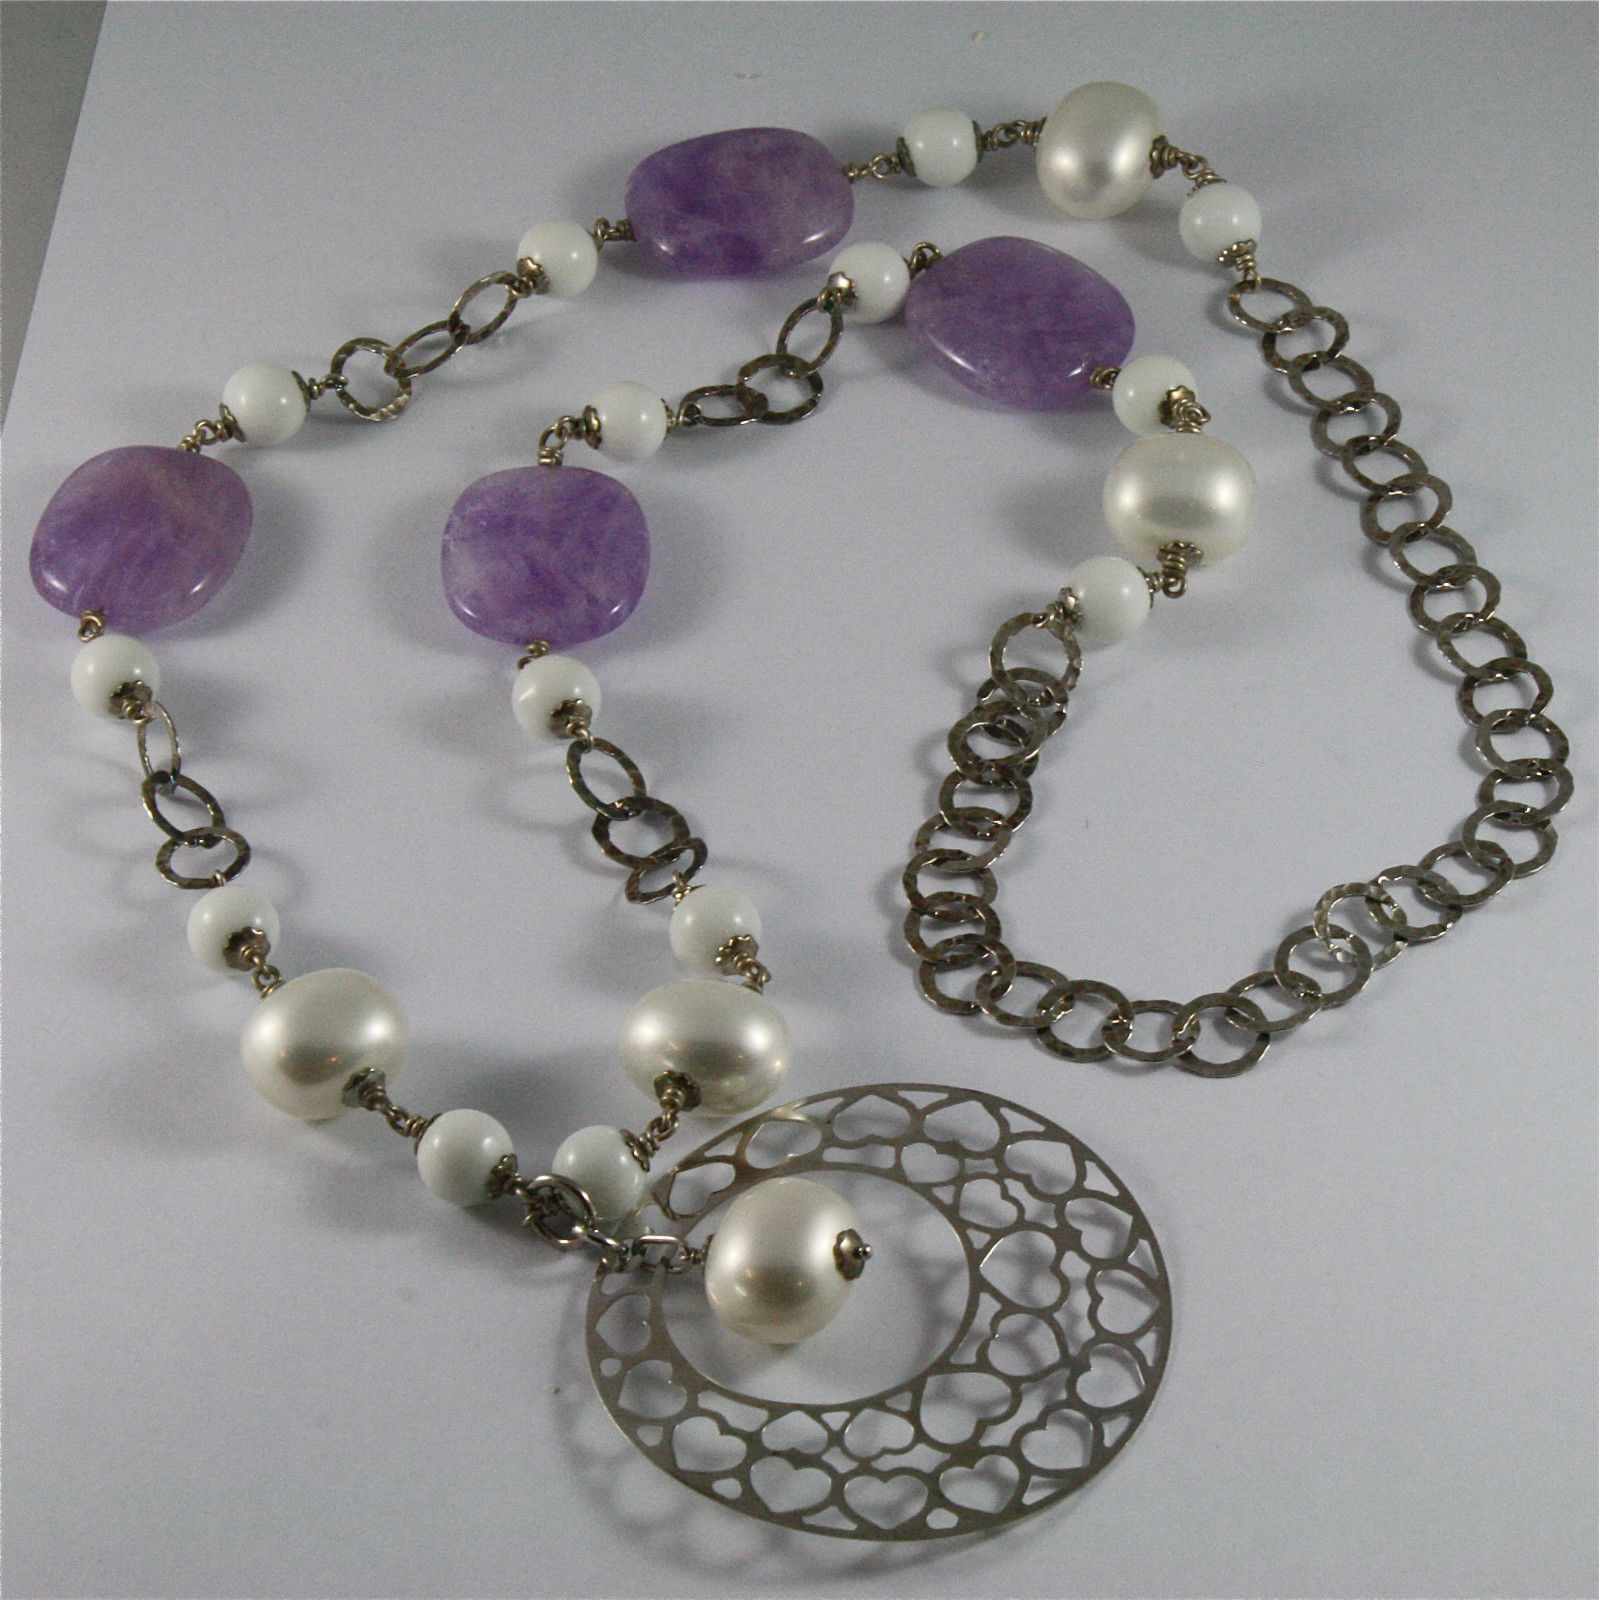 .925 SILVER RHODIUM NECKLACE 33,46 In, AMETHYST, AGATE, REBUILT PEARLS, PENDANT.